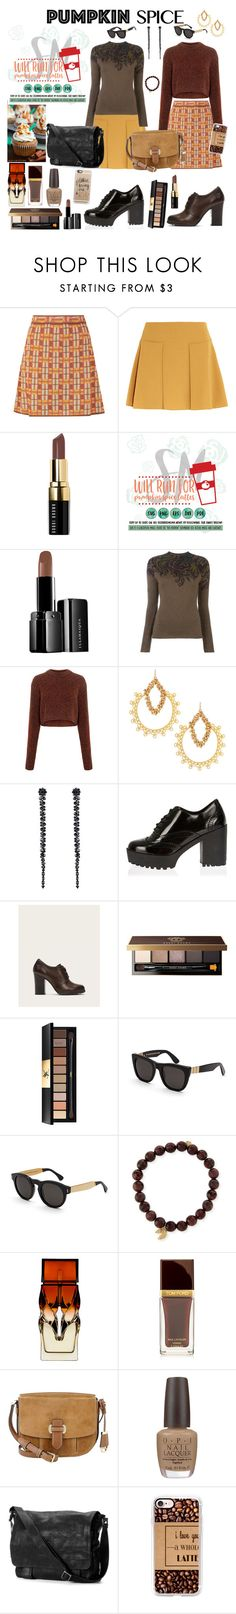 """""""Let's meet at the coffee shop between classes."""" by denibrad ❤ liked on Polyvore featuring M Missoni, See by Chloé, Bobbi Brown Cosmetics, Cricut, Illamasqua, Etro, TIBI, Devon Leigh, Simone Rocha and River Island"""